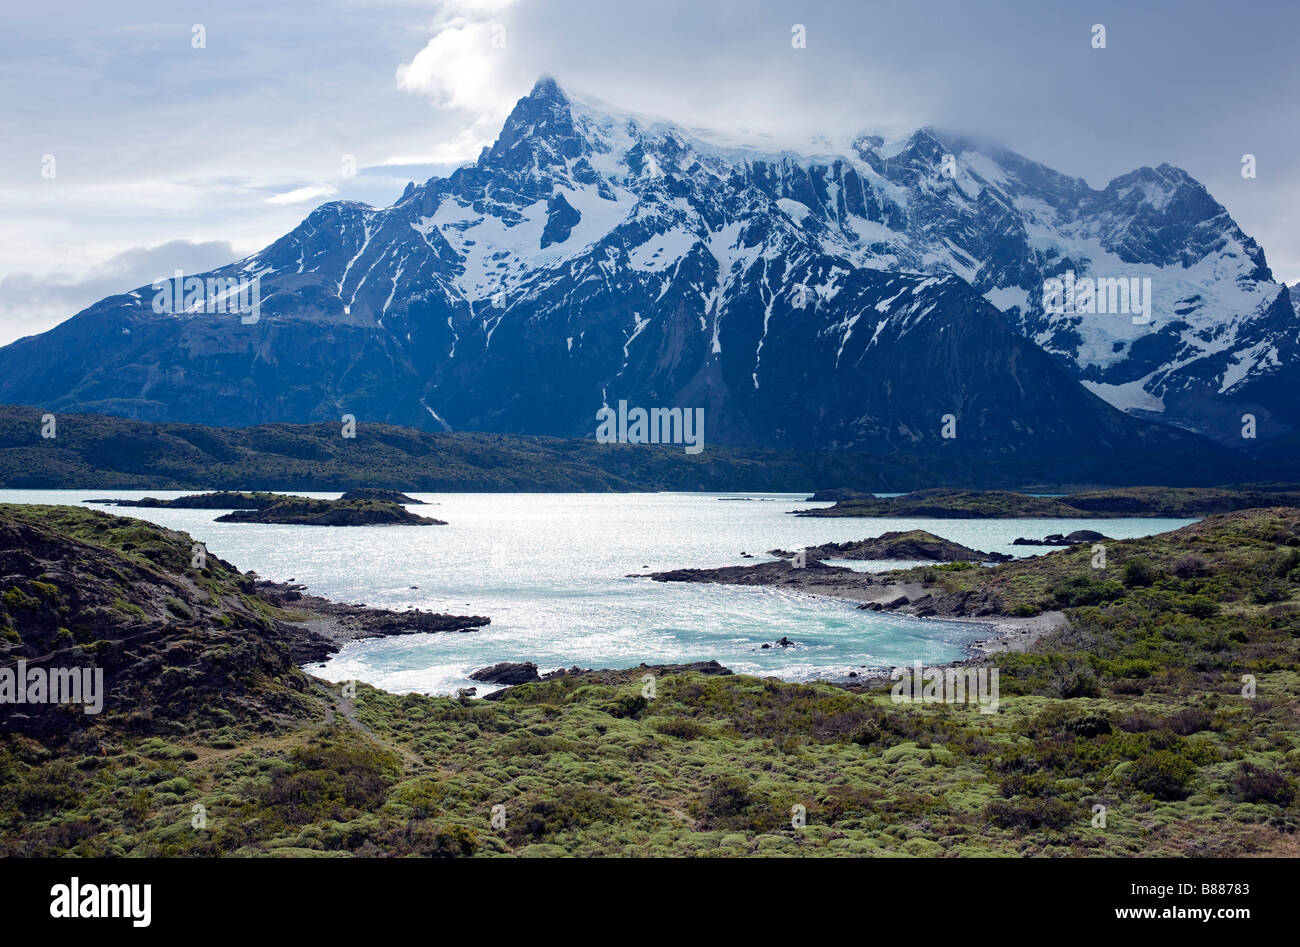 Lago Nordenskjold in the Torres del Paine National Park, Chile - Stock Image